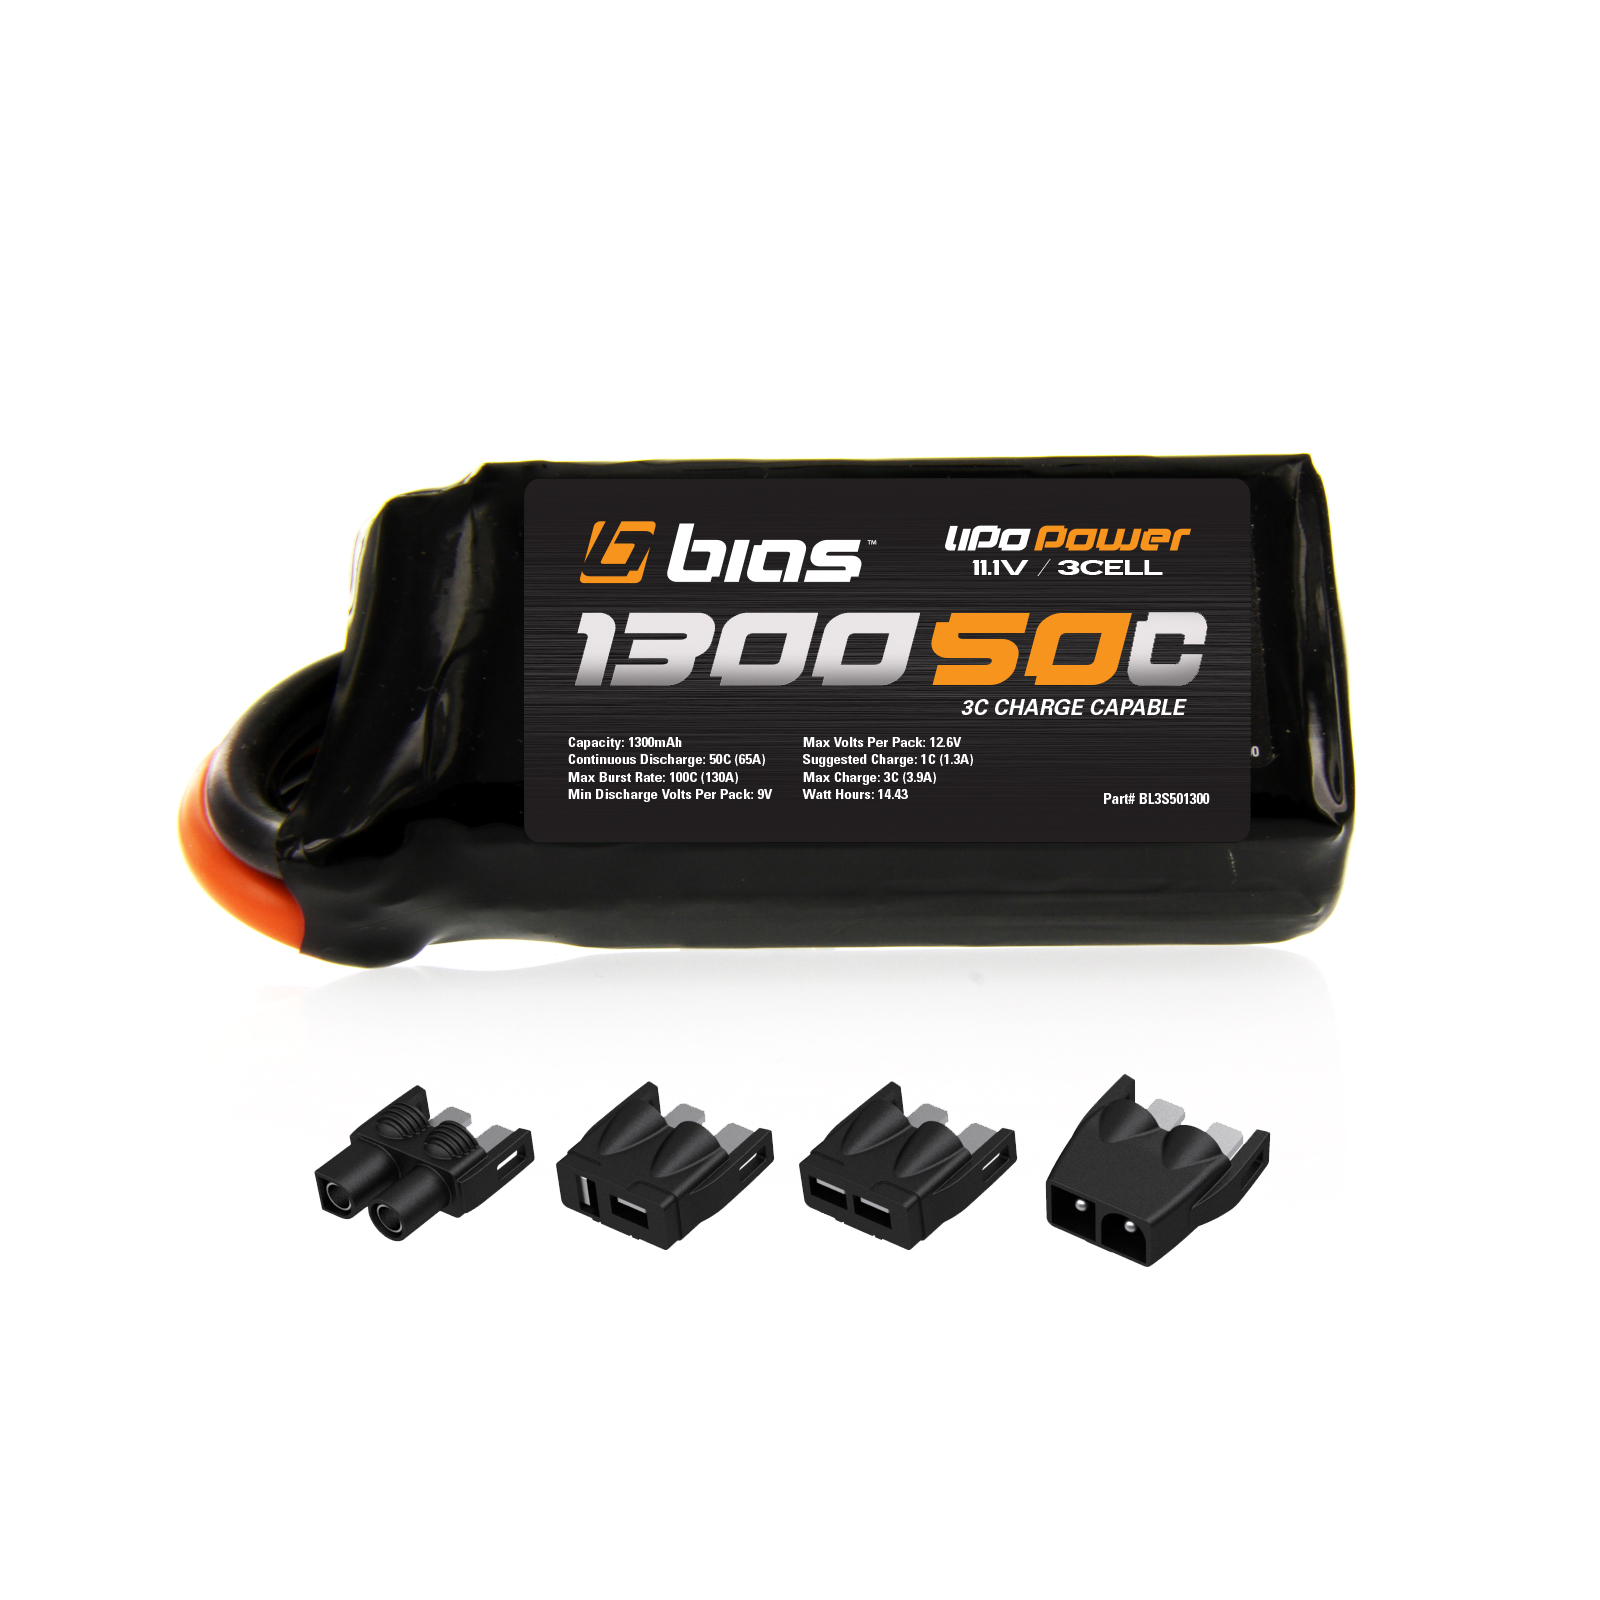 Blade Vortex 250 Pro RC Quadcopter FPV Racing Drone 50C 3S 1300mAh 11.1V LiPo Drone Battery by Bias